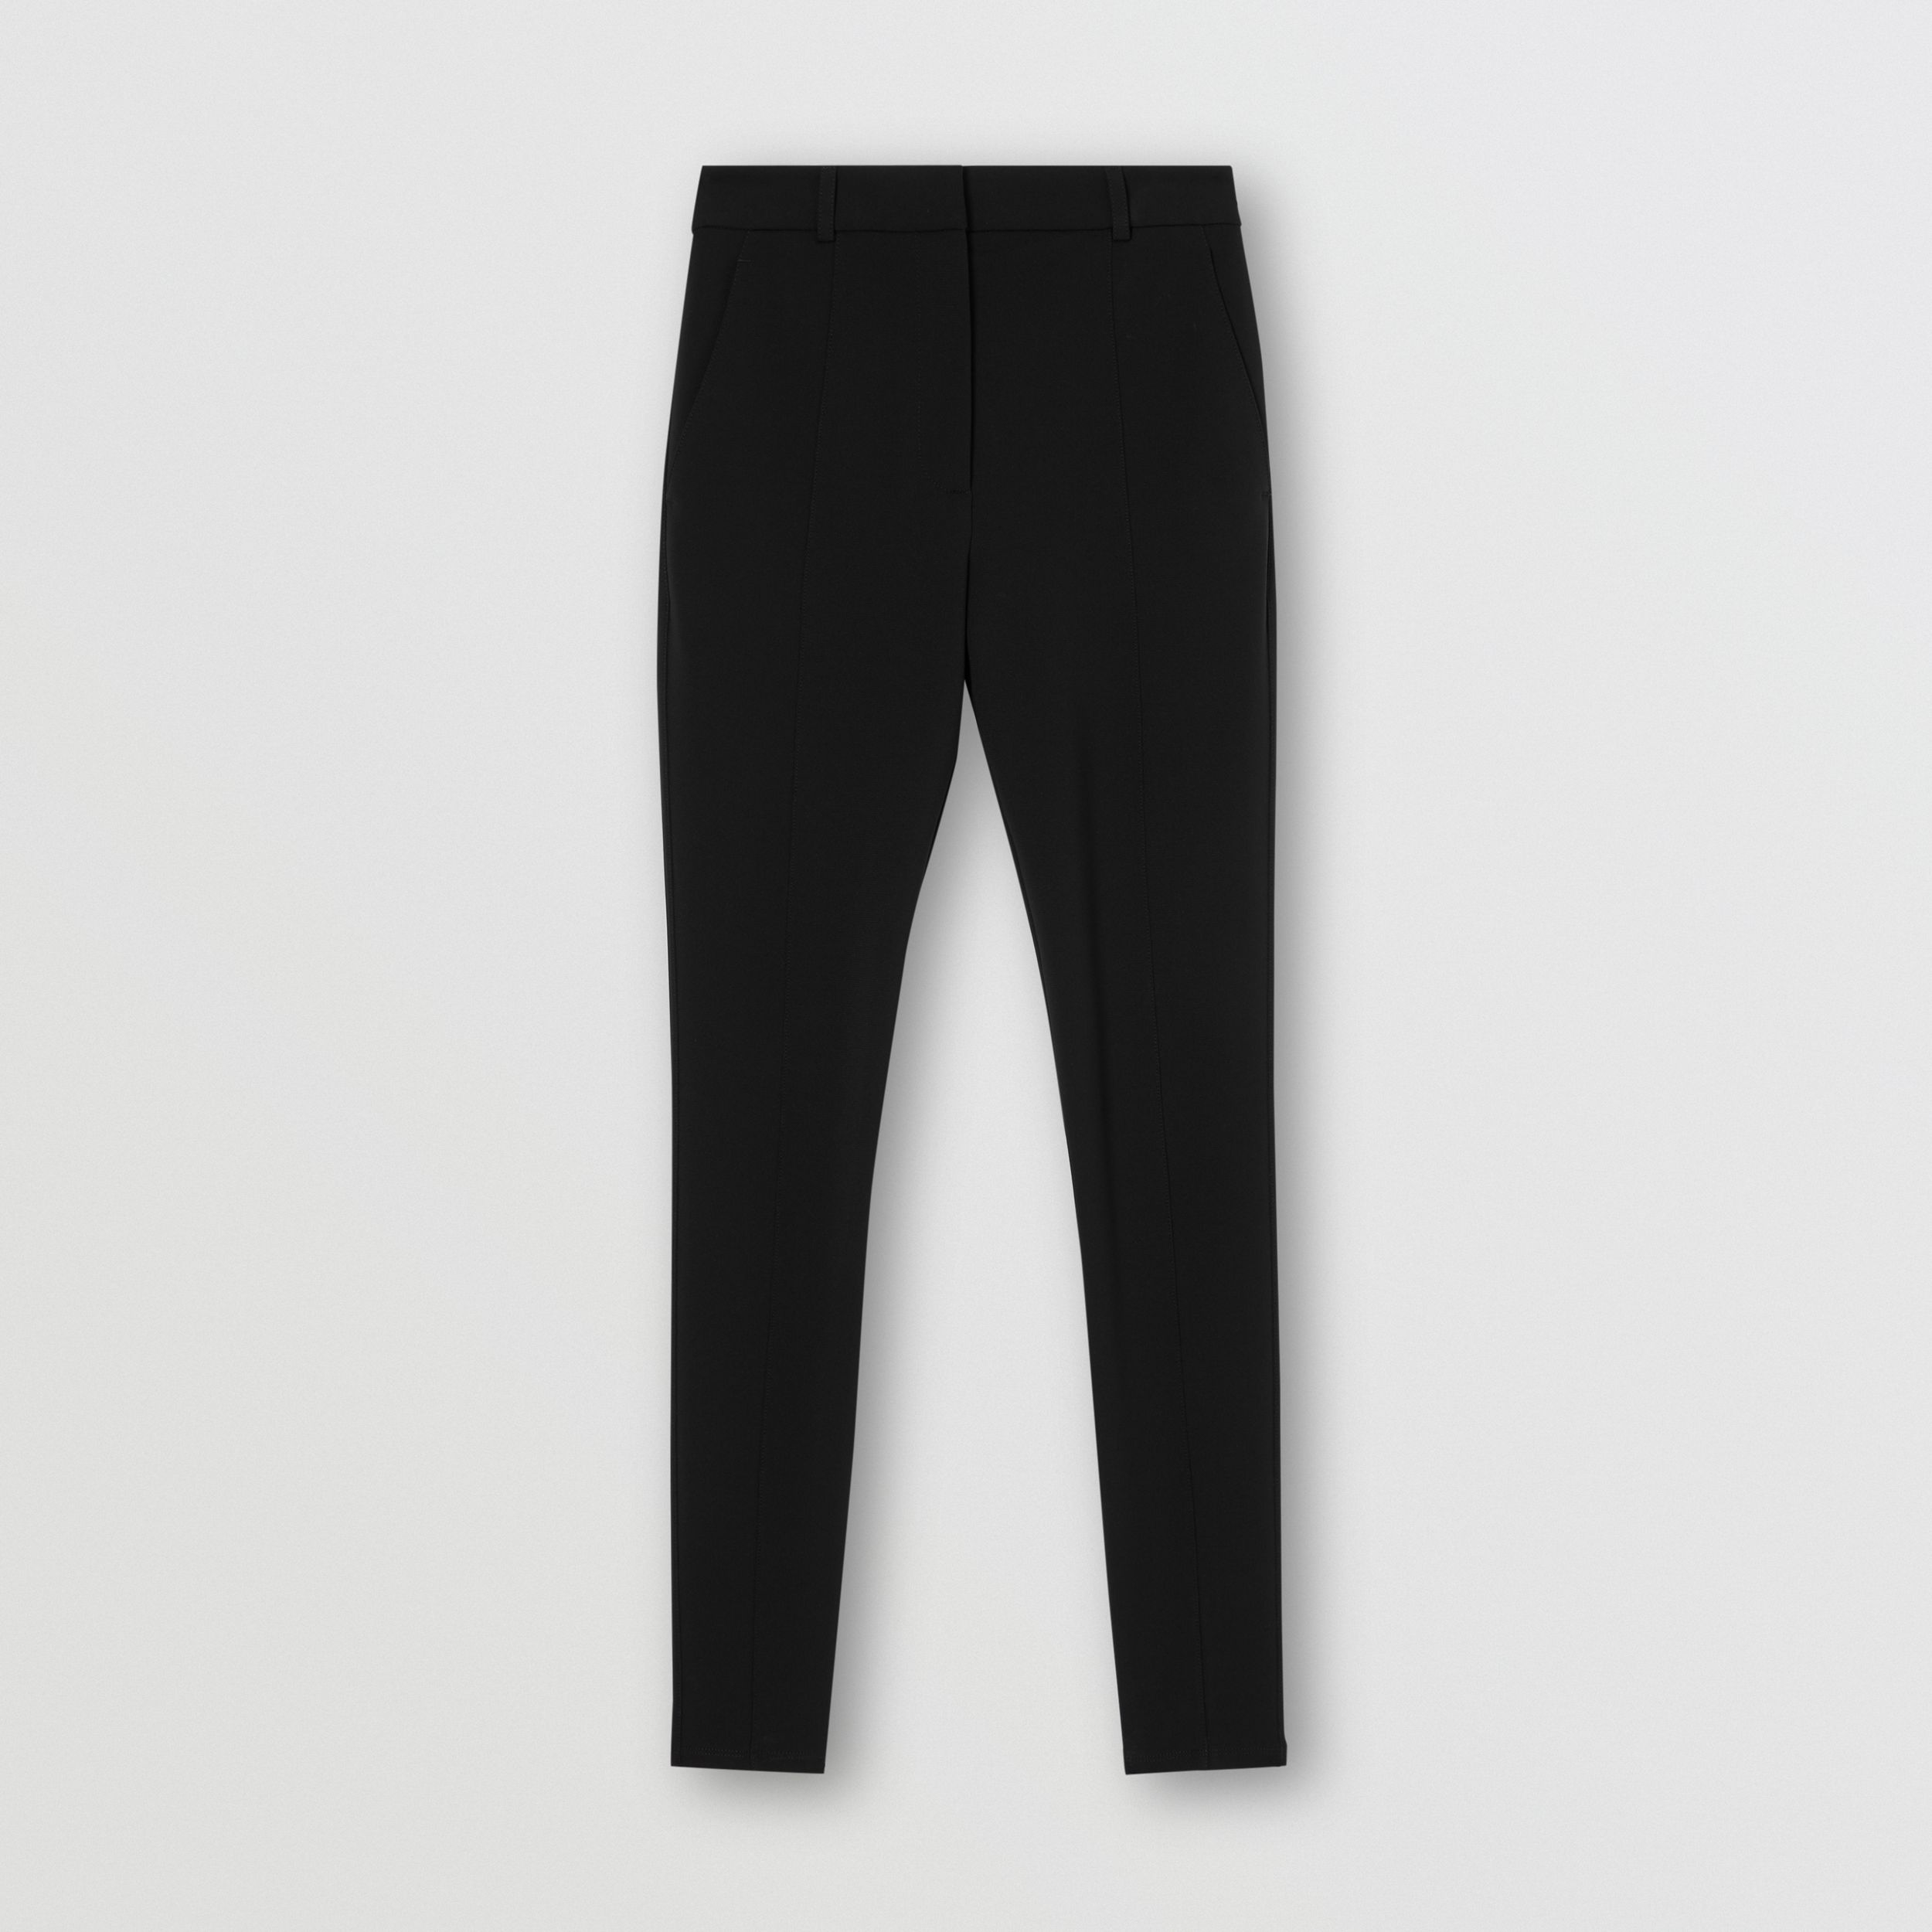 Stretch Jersey Jodhpurs in Black - Women | Burberry United States - 4